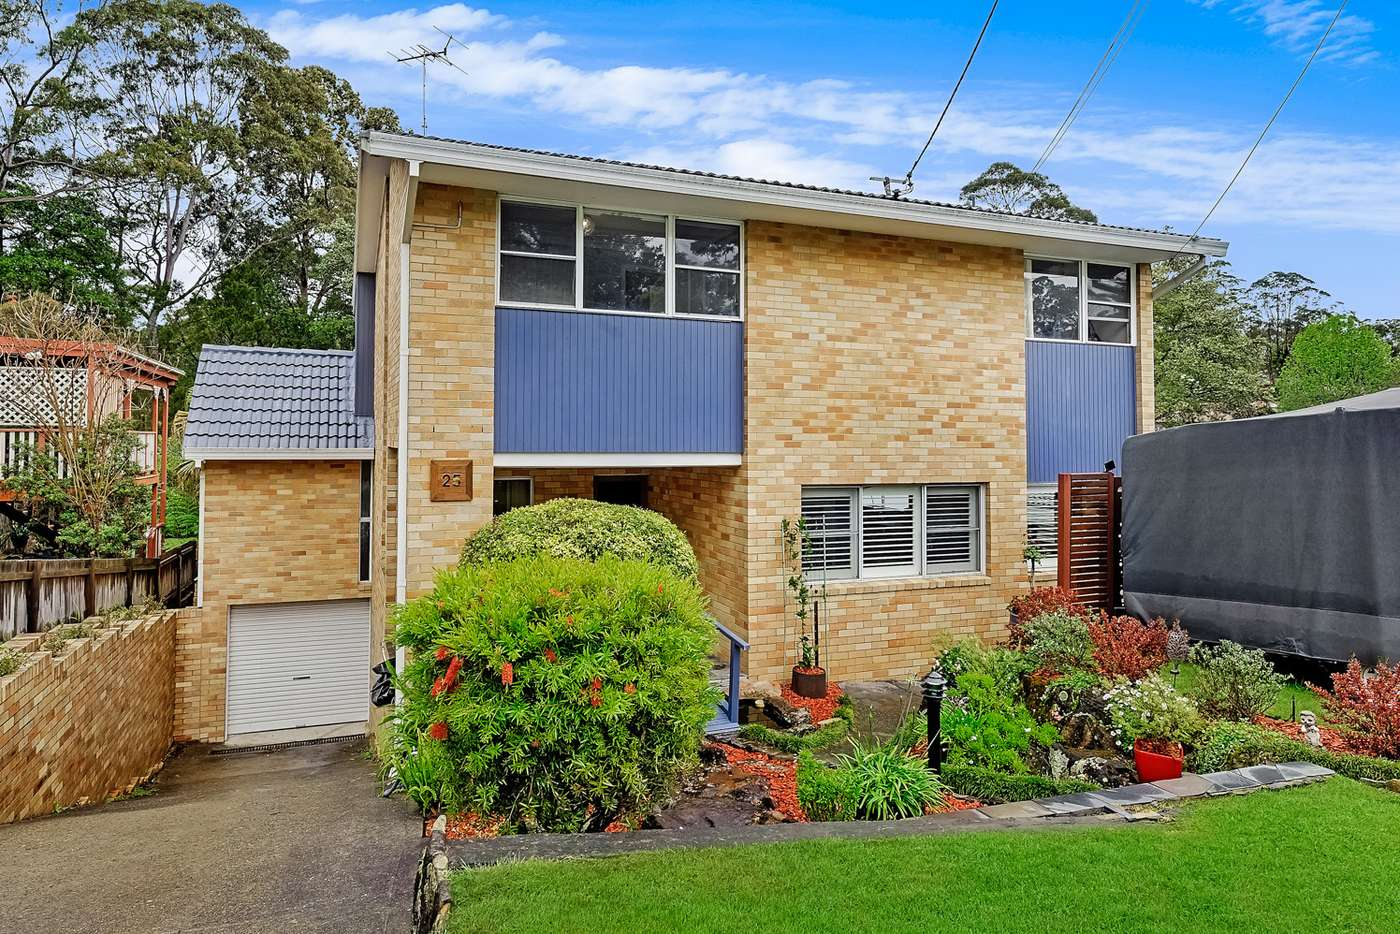 Main view of Homely house listing, 25 Currawong Avenue, Normanhurst NSW 2076